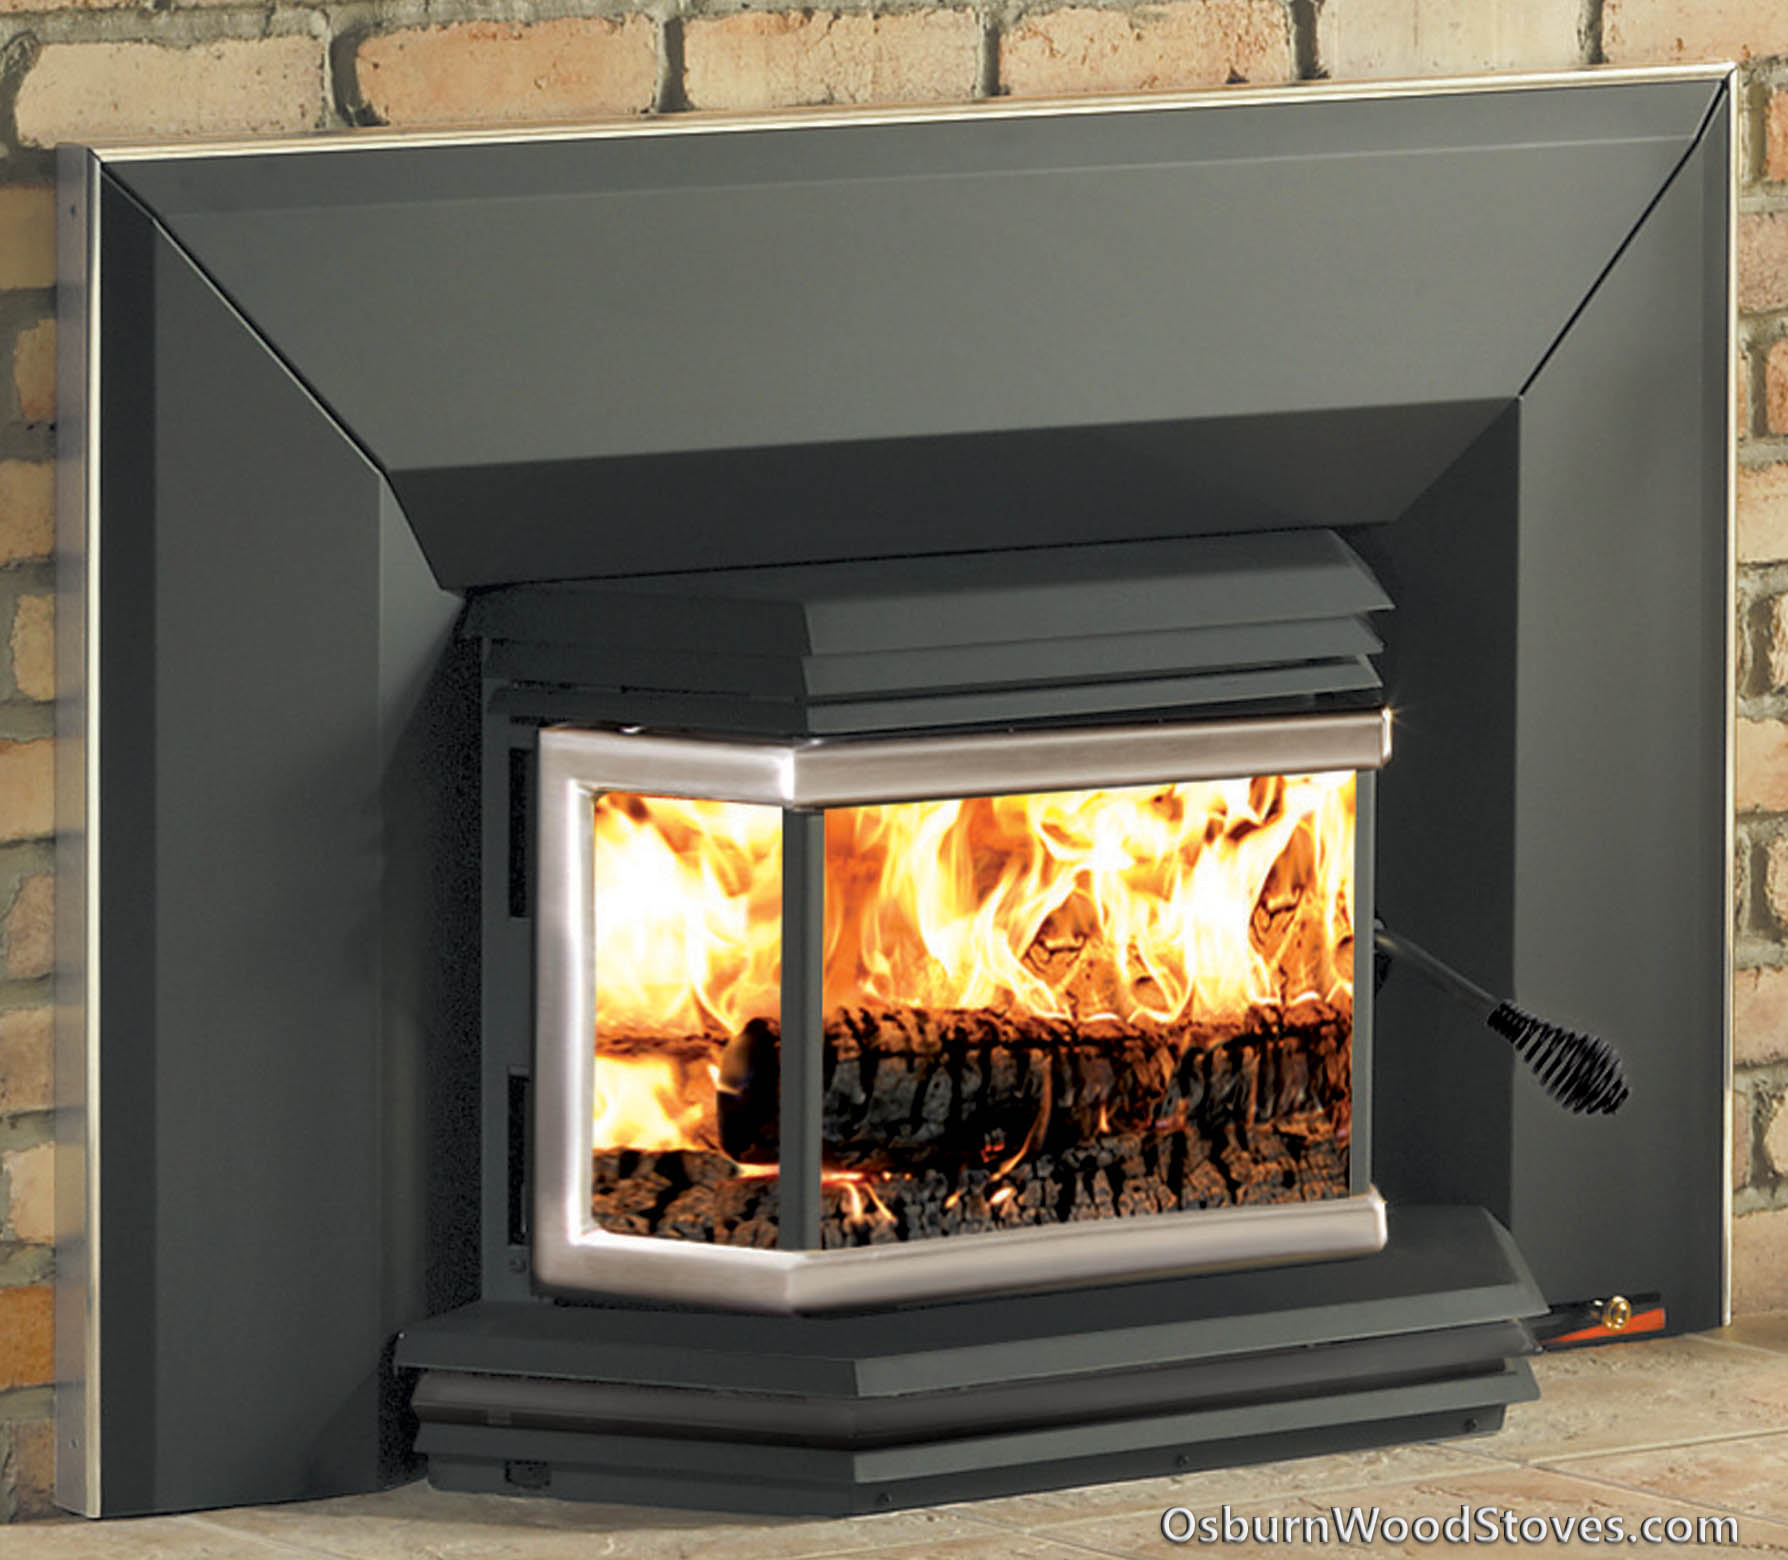 osburn 1800 fireplace insert at osburnwoodstoves com